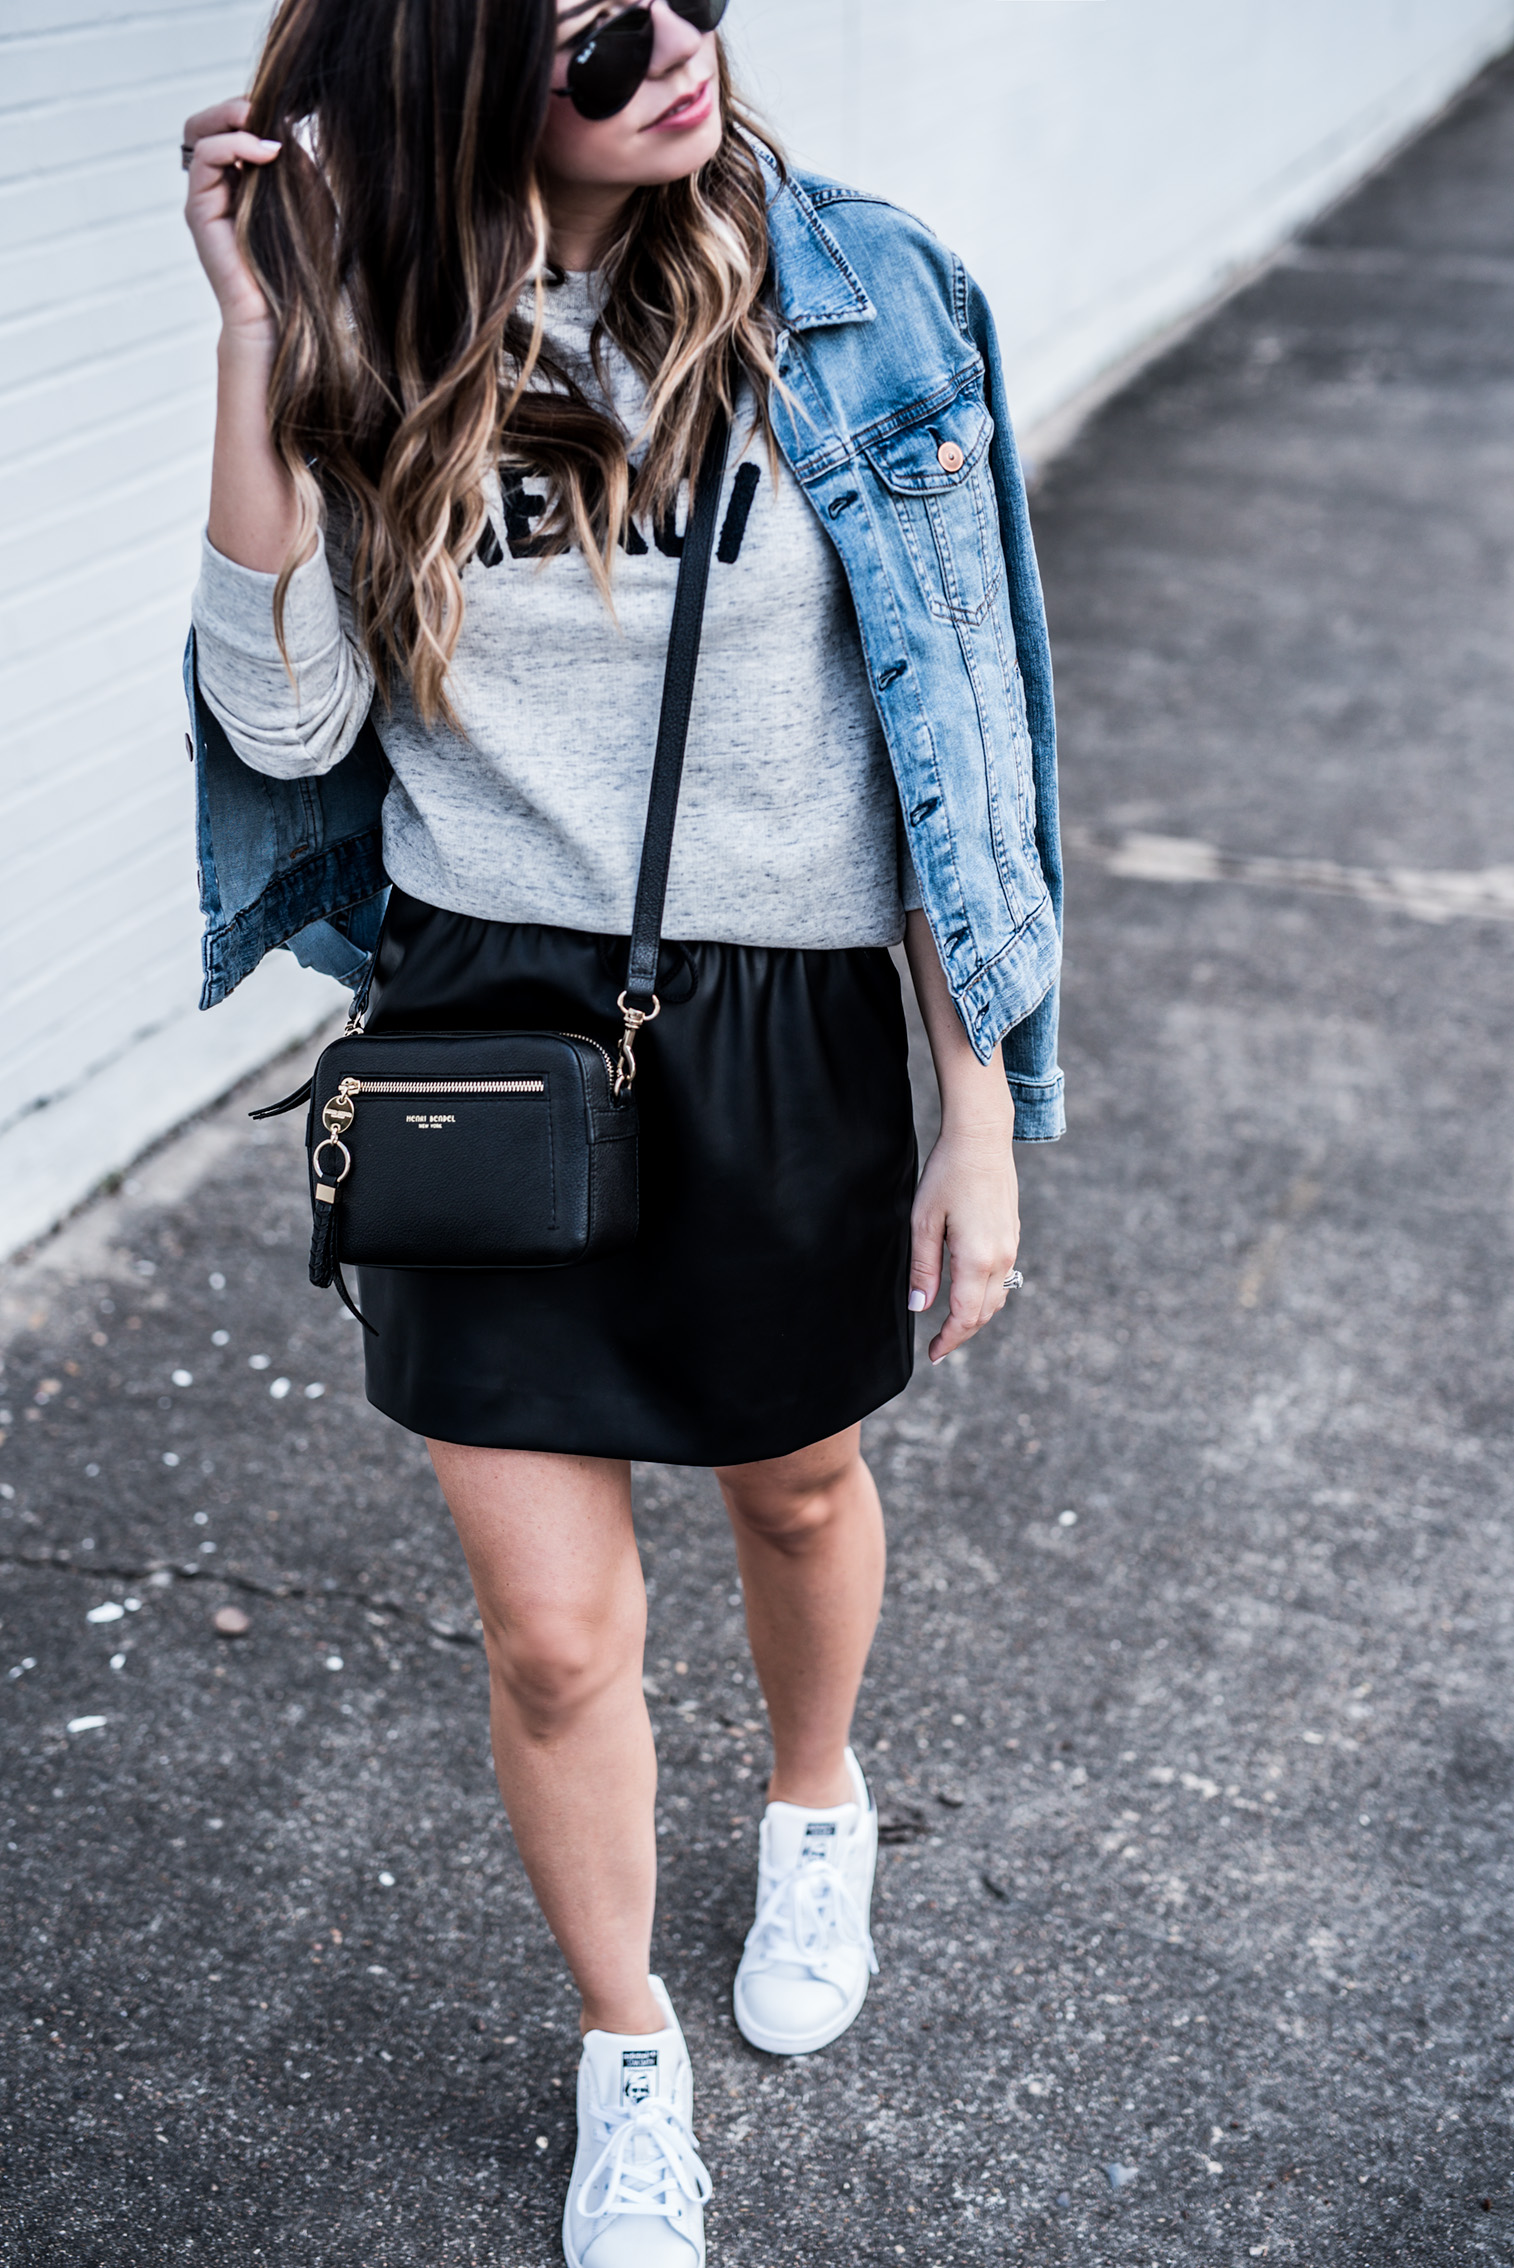 Houston fashion and lifestyle blogger Tiffany Jais wearing a leather skirt and stan smith sneakers | Outfit ideas for spring 2017, casual streetstyle,